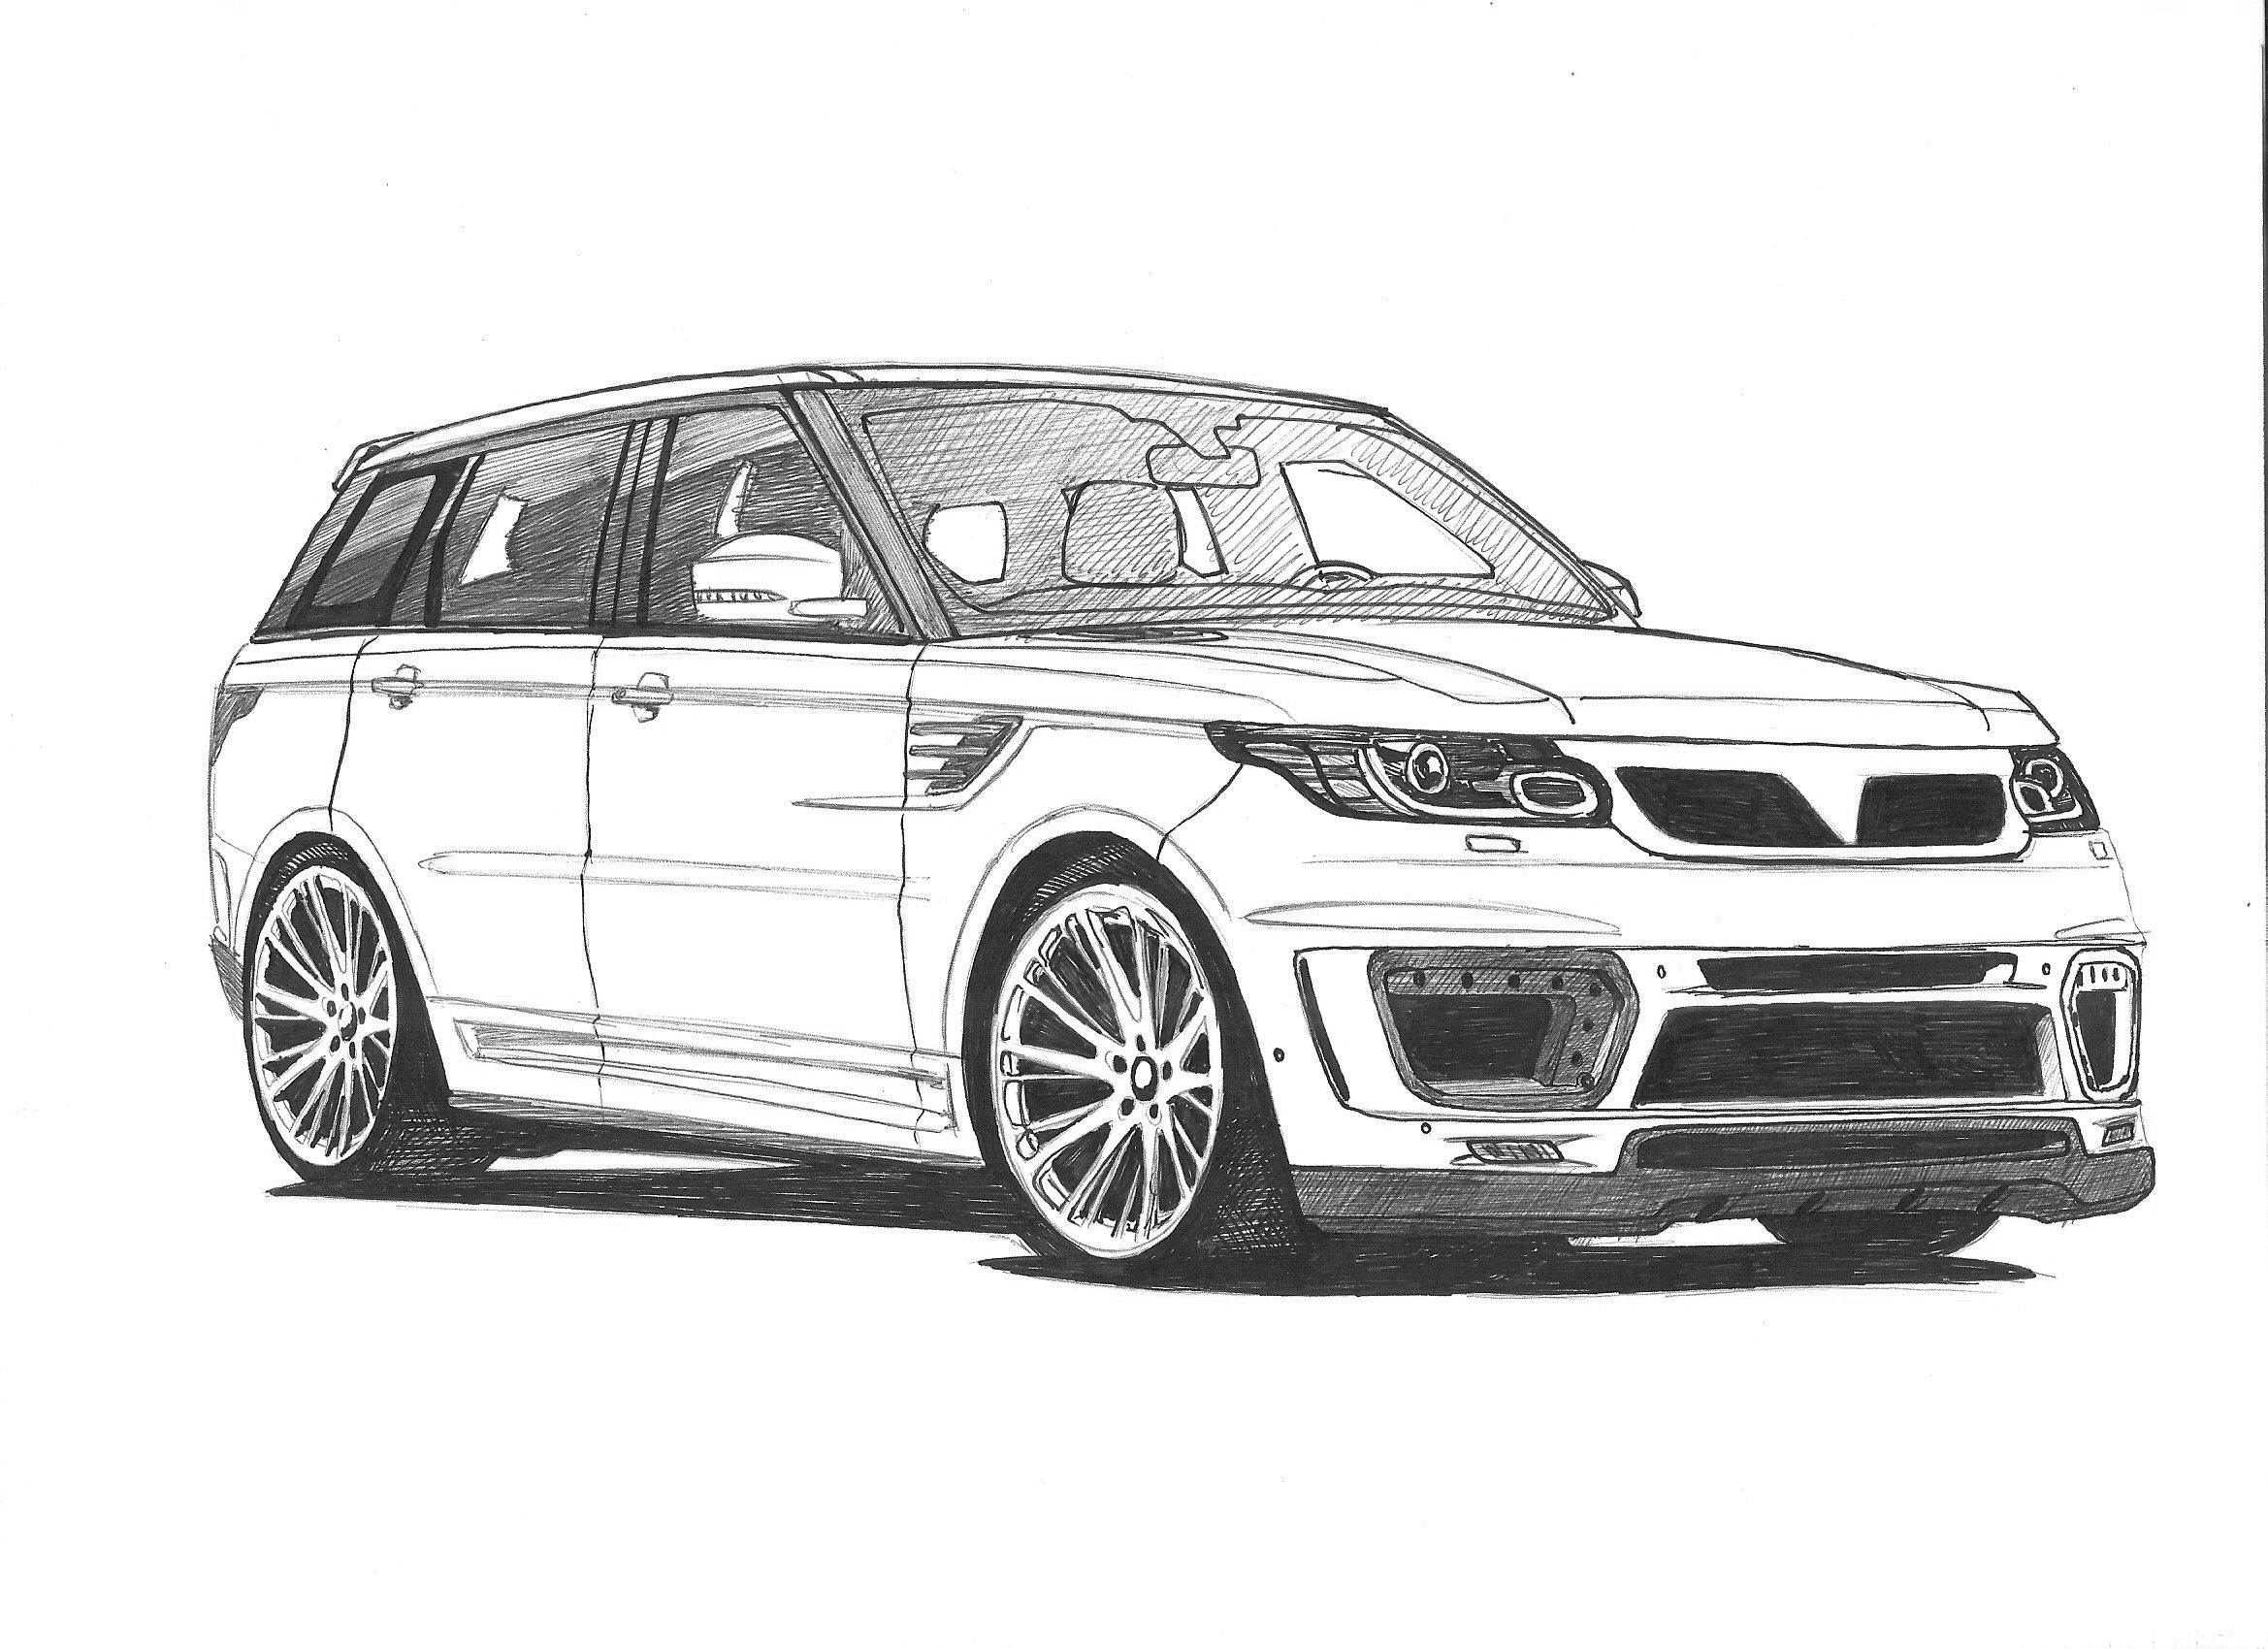 Sketch of body kit for the new range rover sport Aspire